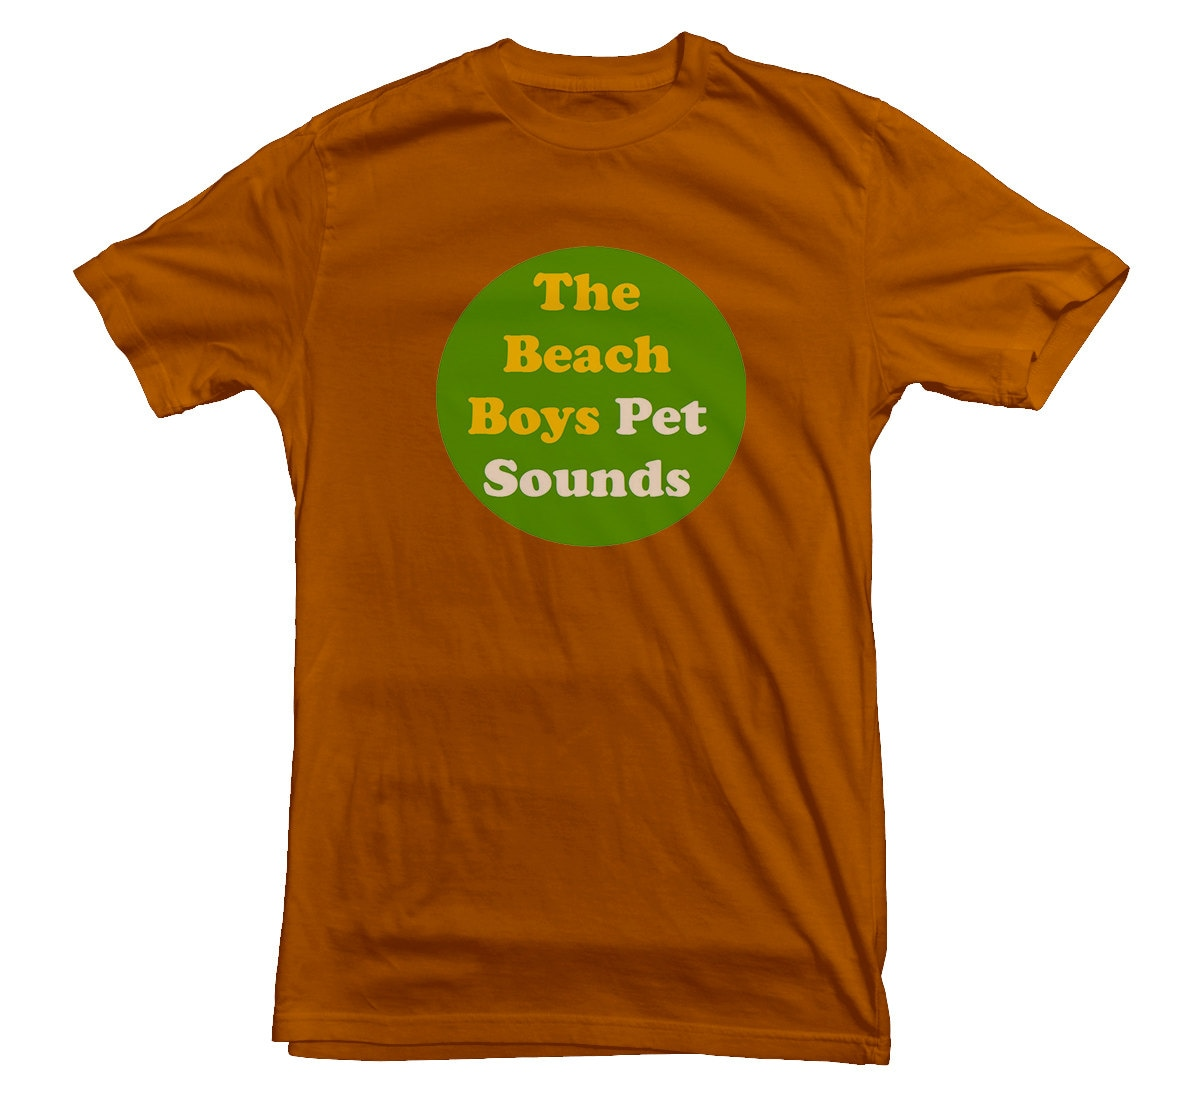 Find great deals on eBay for beach boys t shirt. Shop with confidence.